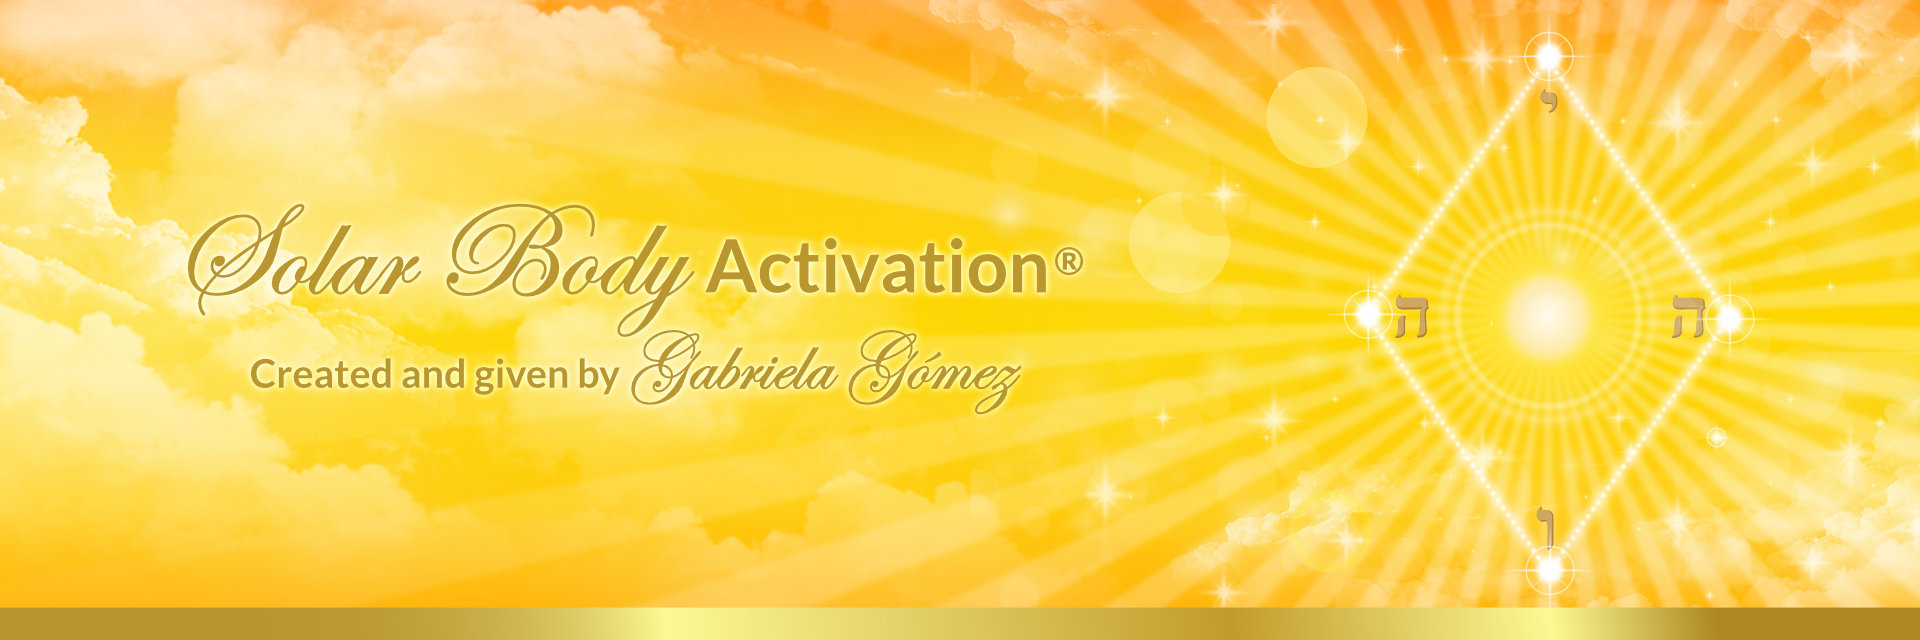 Solar Body Activation